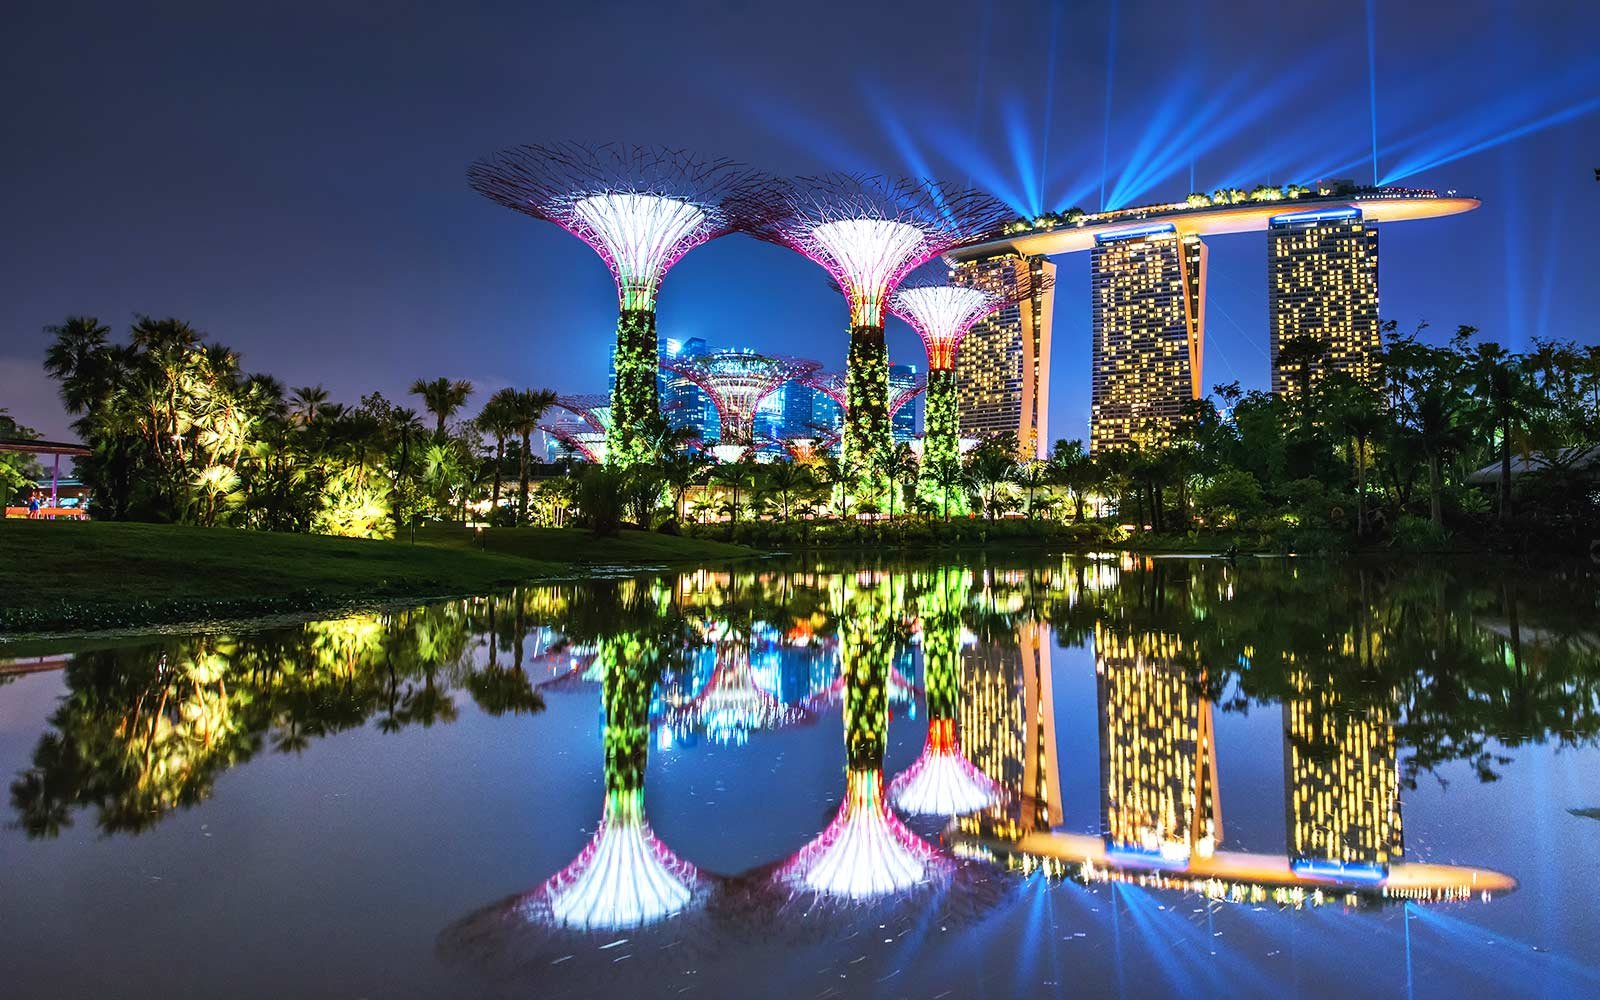 FLIGHT DEAL: Fly to Singapore and Tokyo for $750